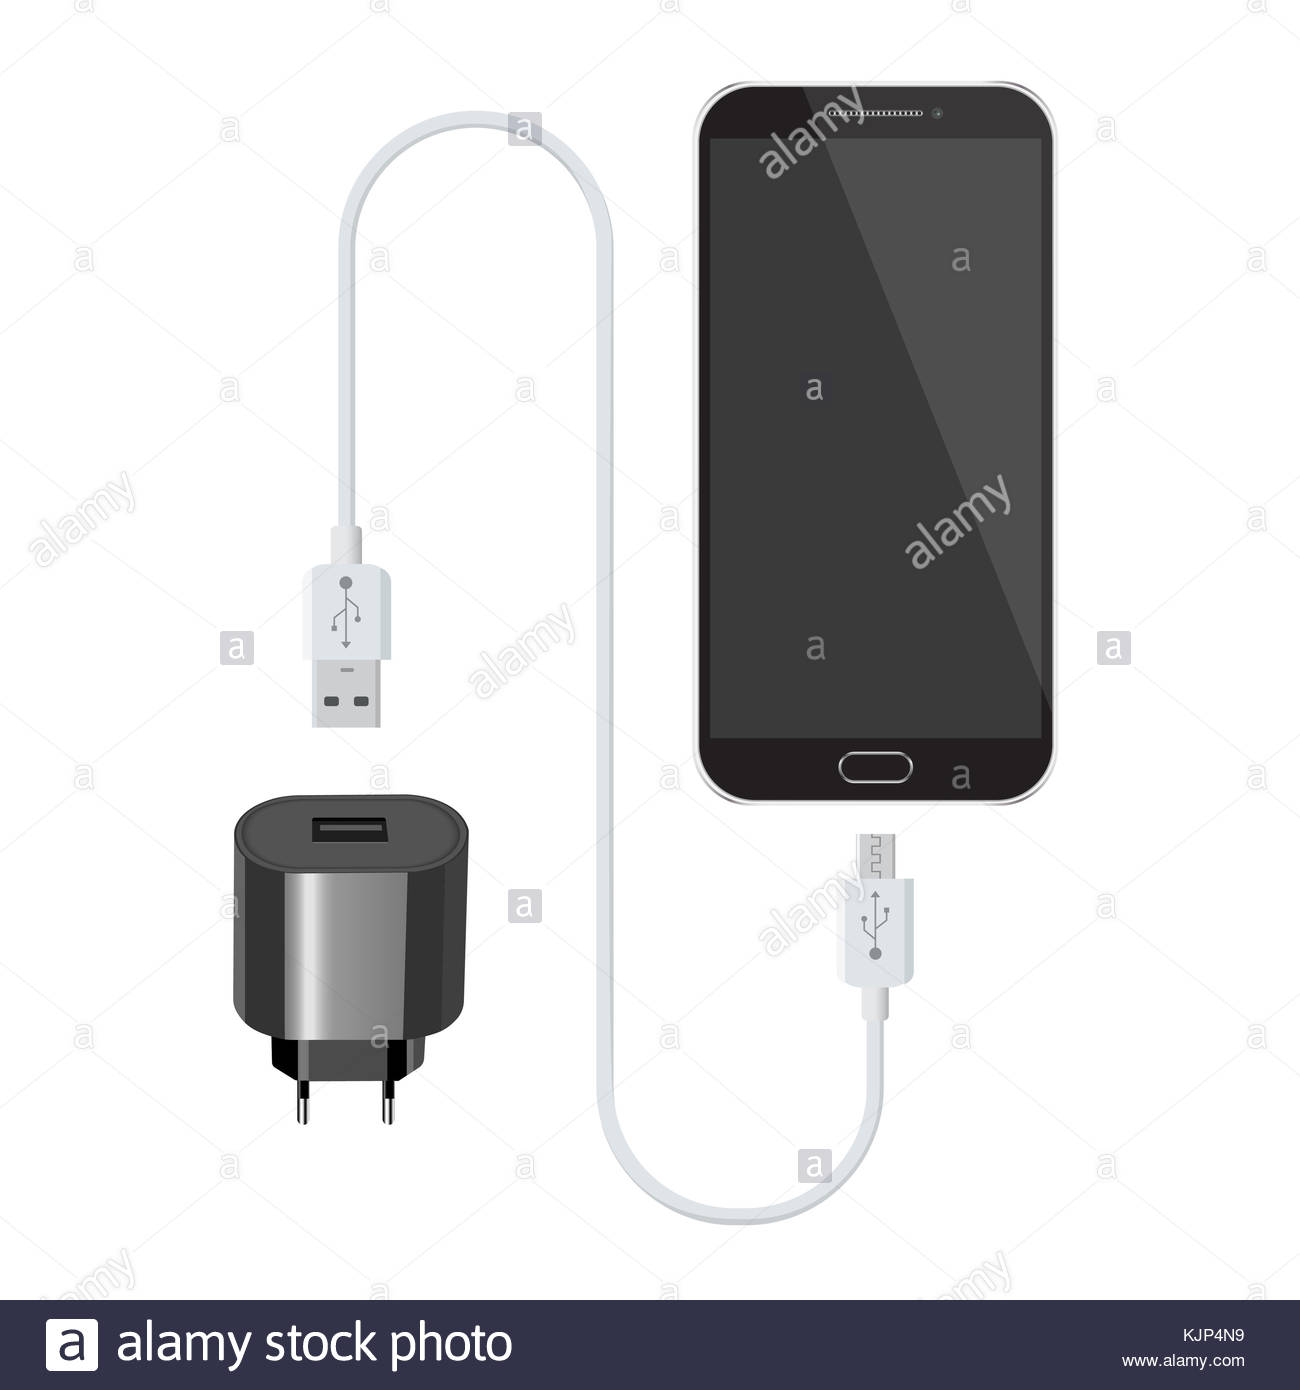 how to connect smartphone to car usb